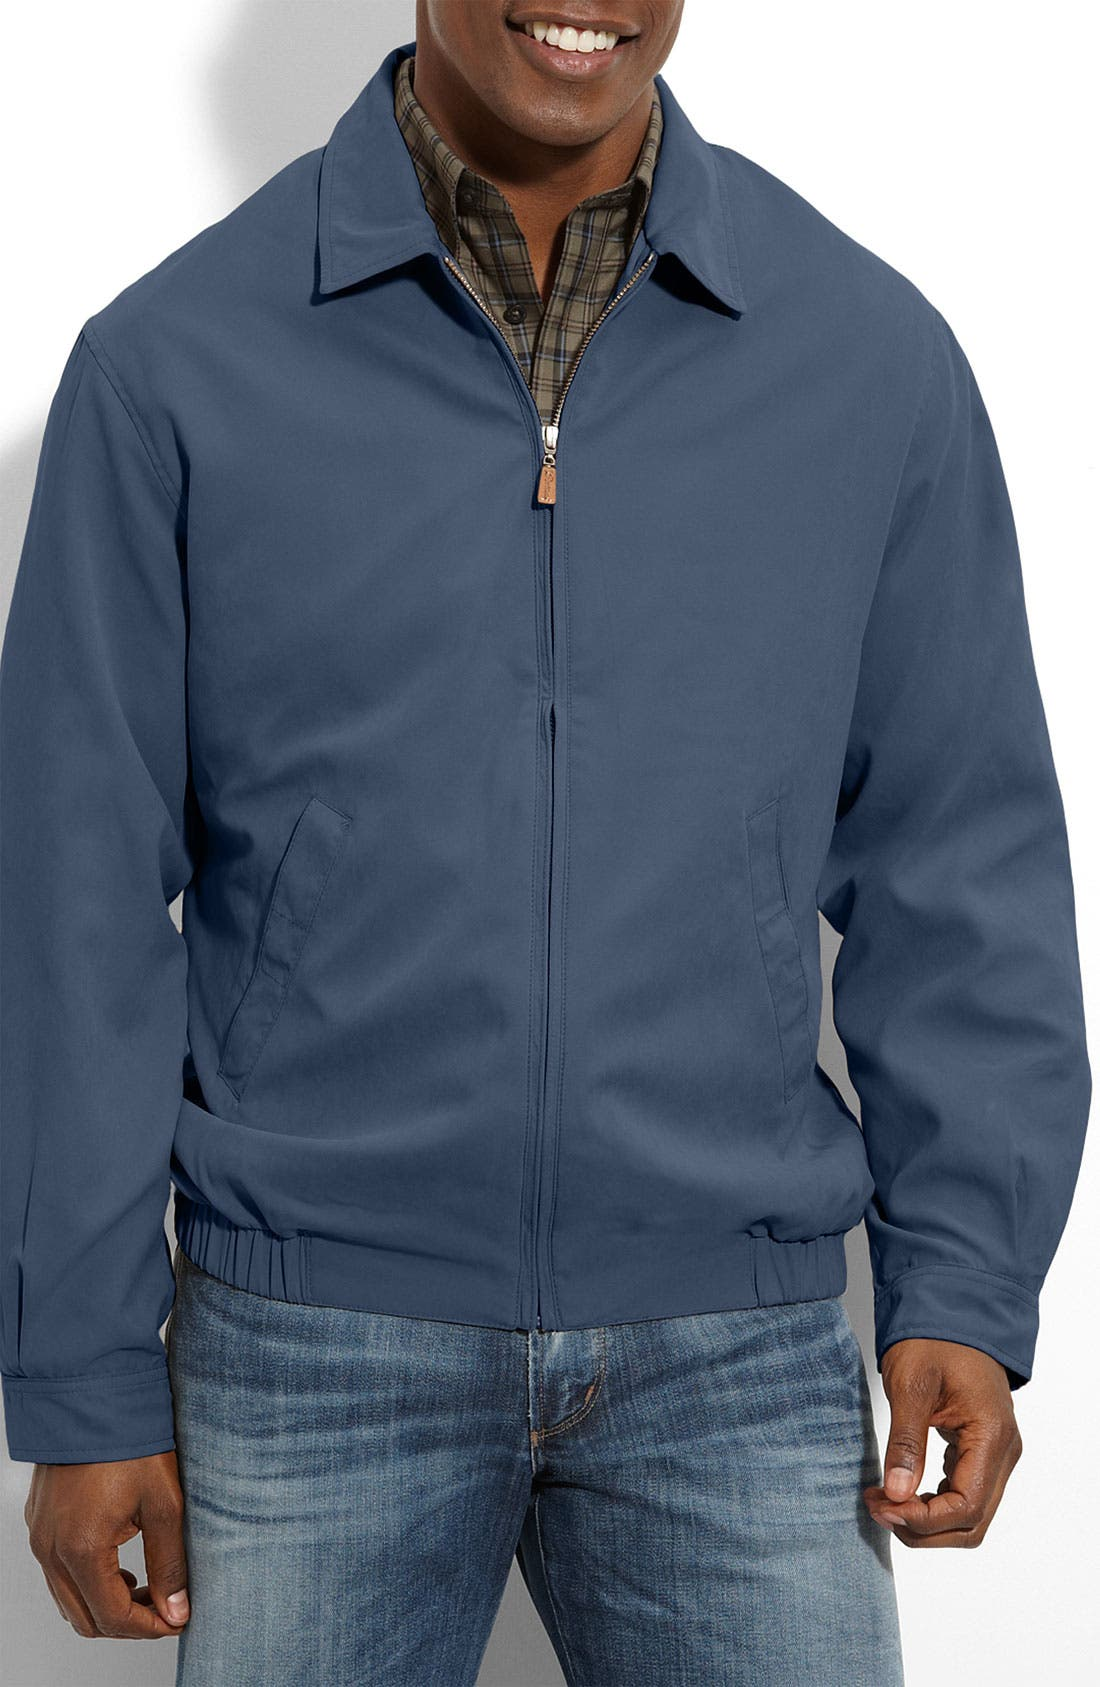 Alternate Image 1 Selected - Peter Millar Microfiber Bomber Jacket